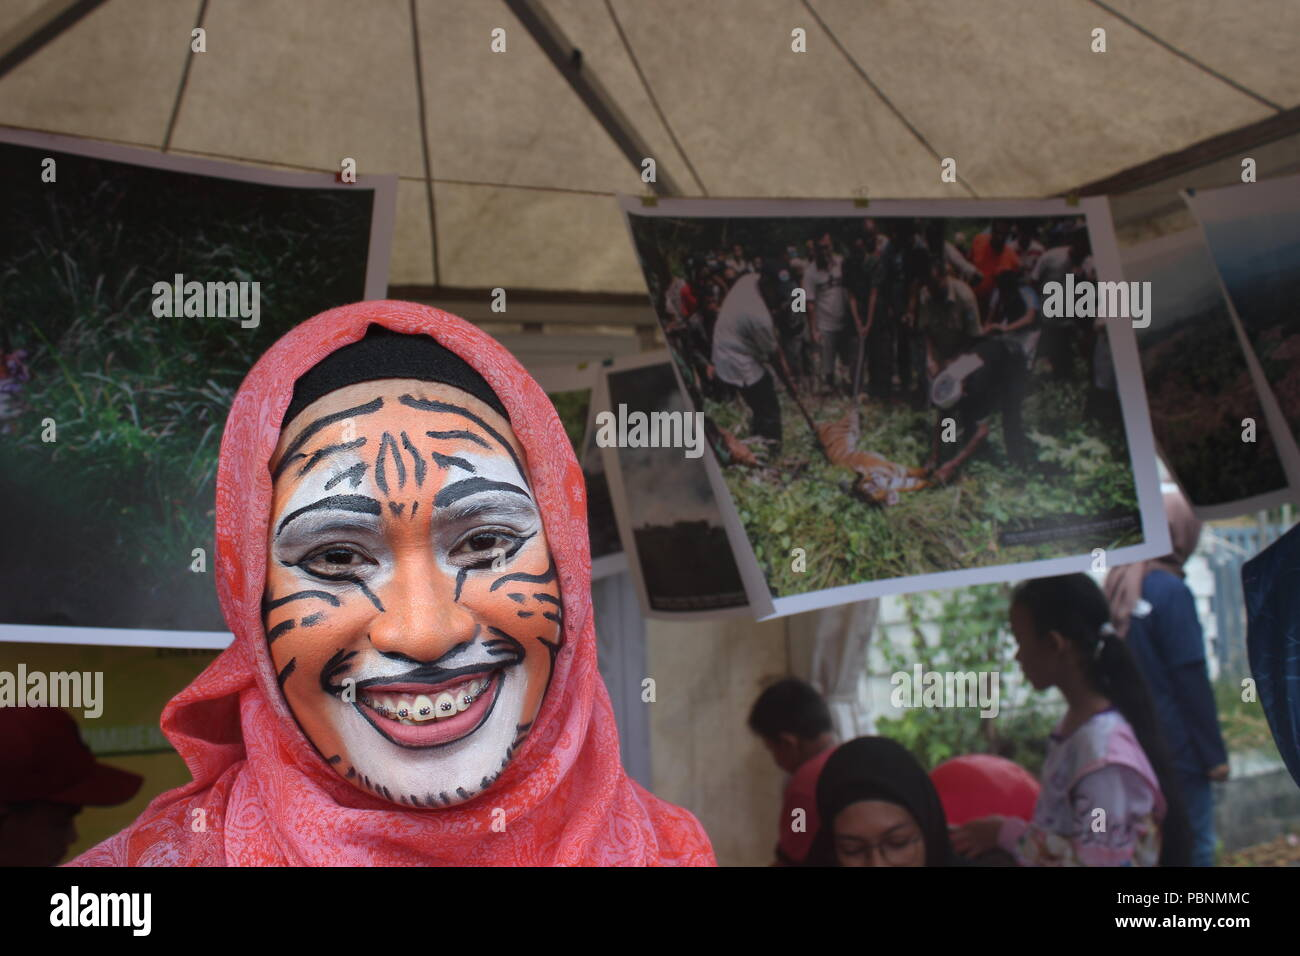 Banda Aceh, Indonesia. 09th Aug, 2015. The community of tiger lovers in Aceh commemorates Global Tiger Day. They are campaigning on the issue of Sumatran tiger conservation. Credit: Adli Dzil Ikram/Pacific Press/Alamy Live News Stock Photo